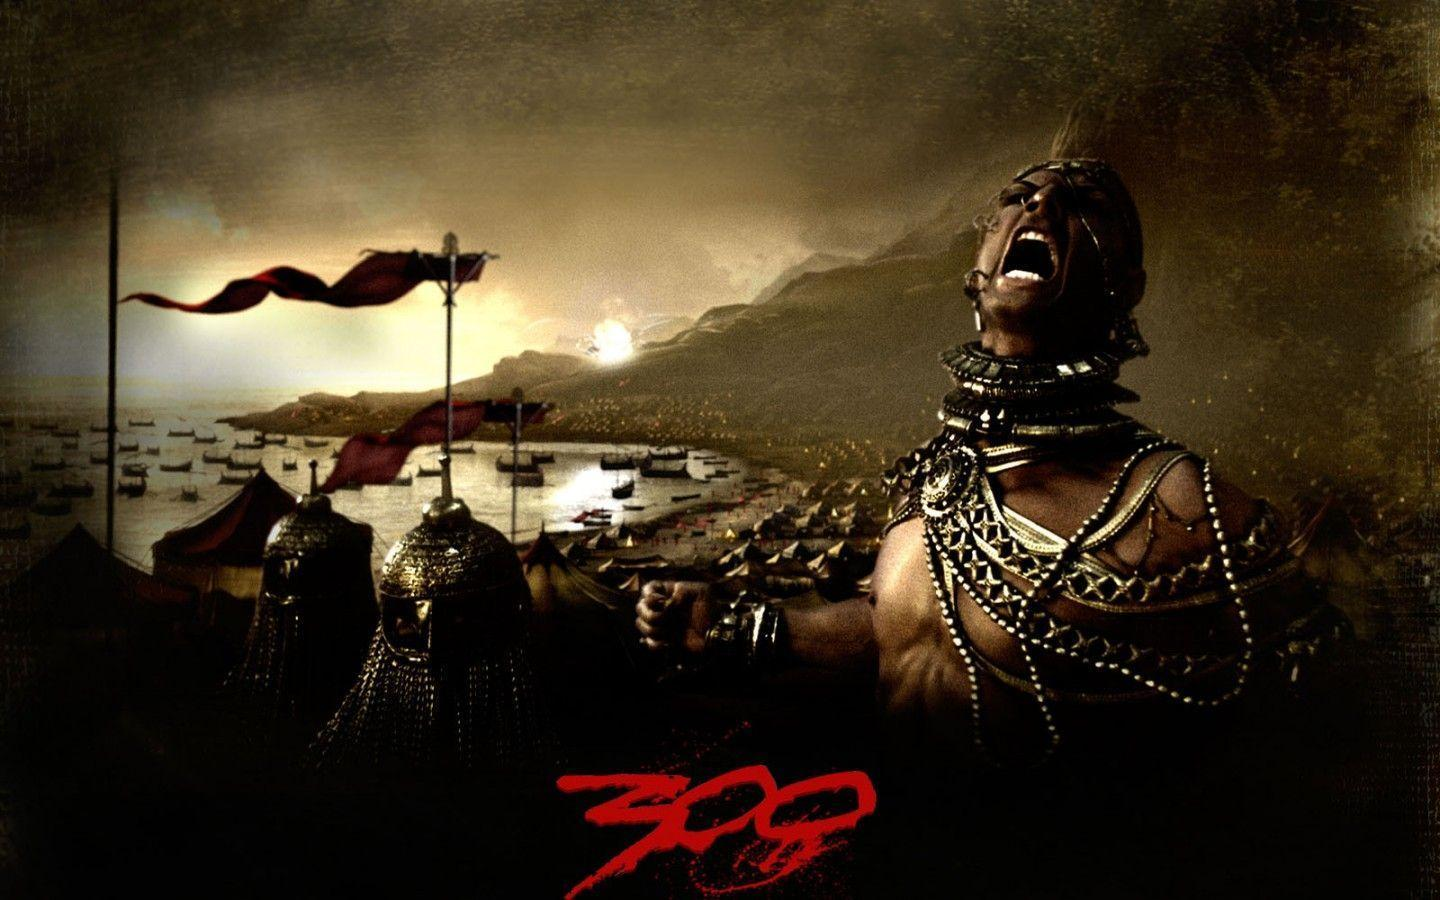 300 spartans wallpaper wallpapers - photo #10